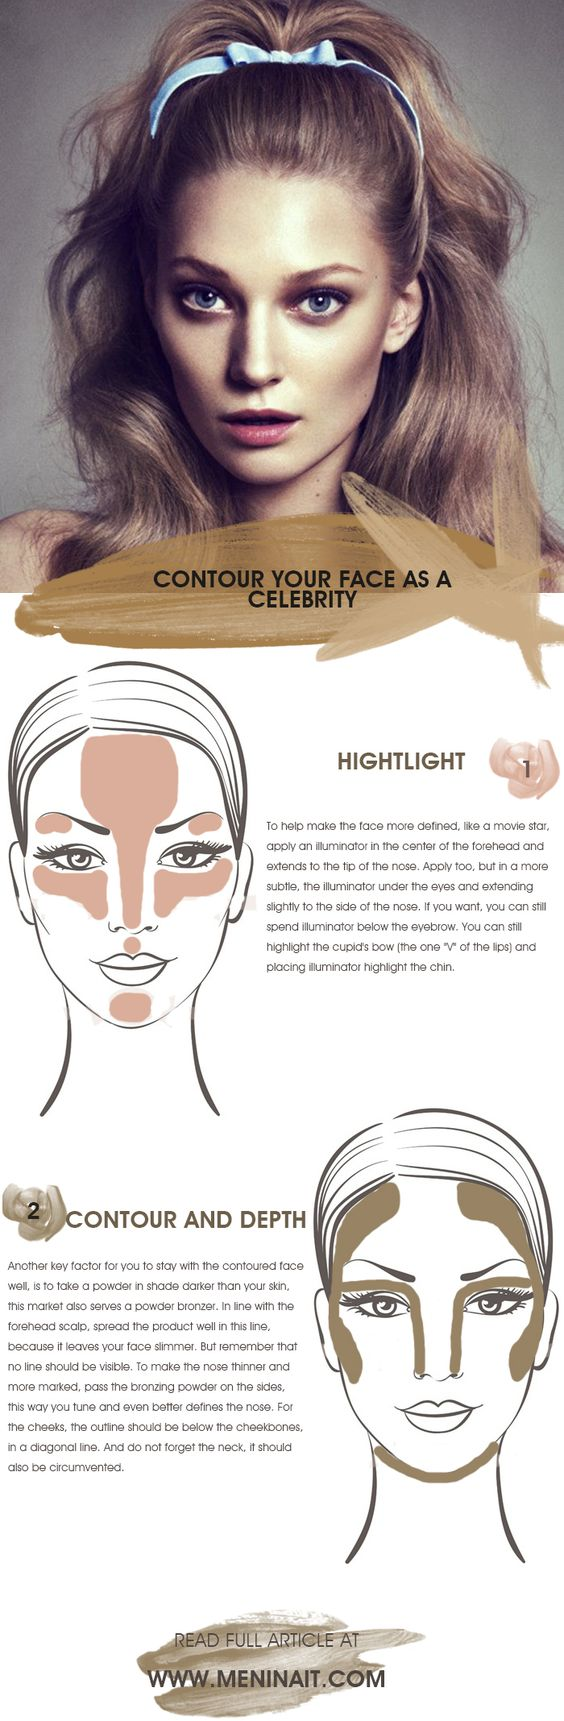 Contouring guide   Make-up : Contouring   Pinterest ...